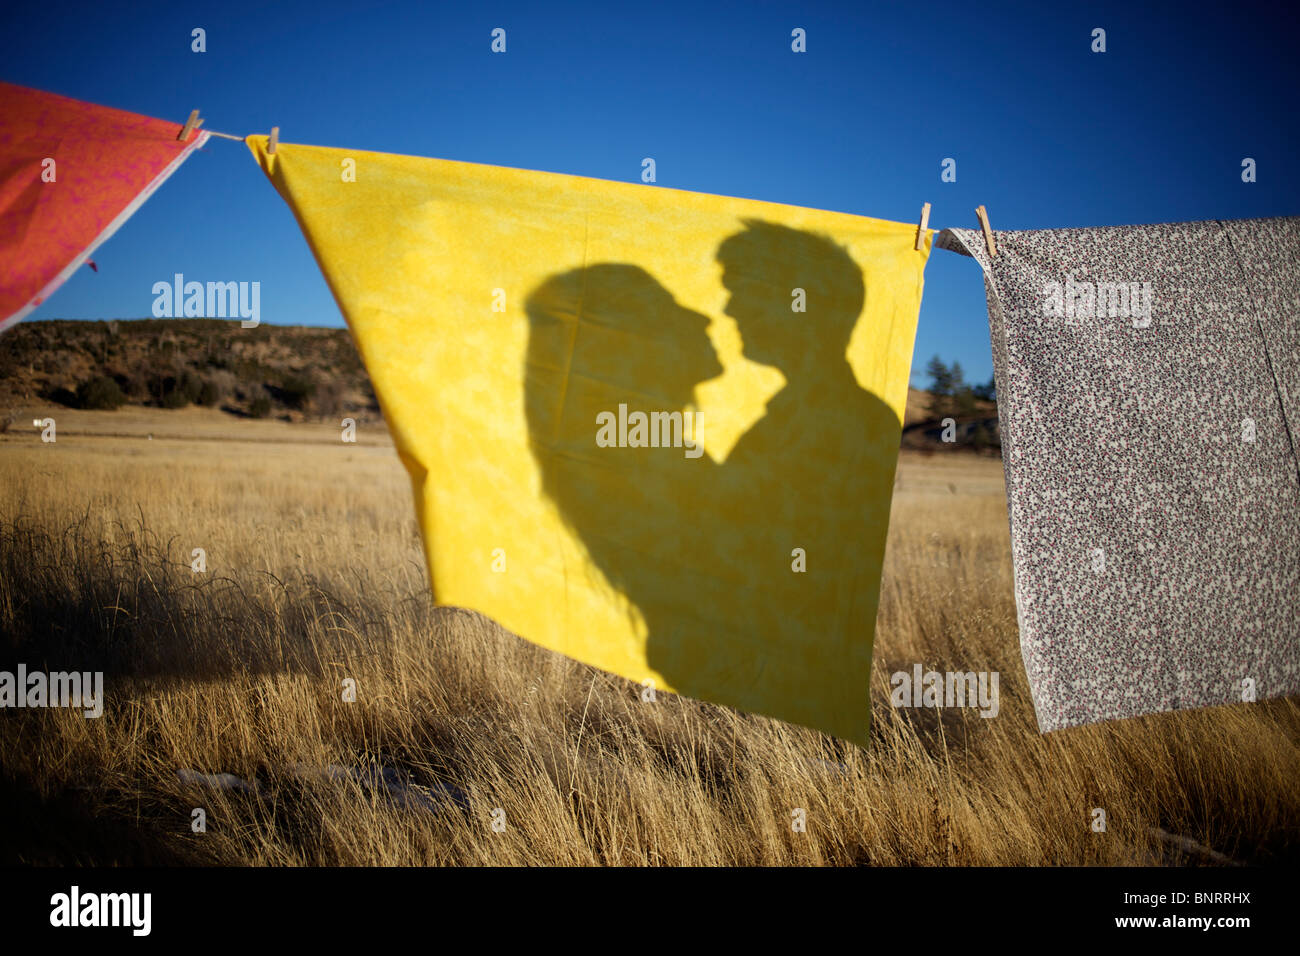 A couple's shadow on a yellow fabric hung on a clothes line in an open field. - Stock Image